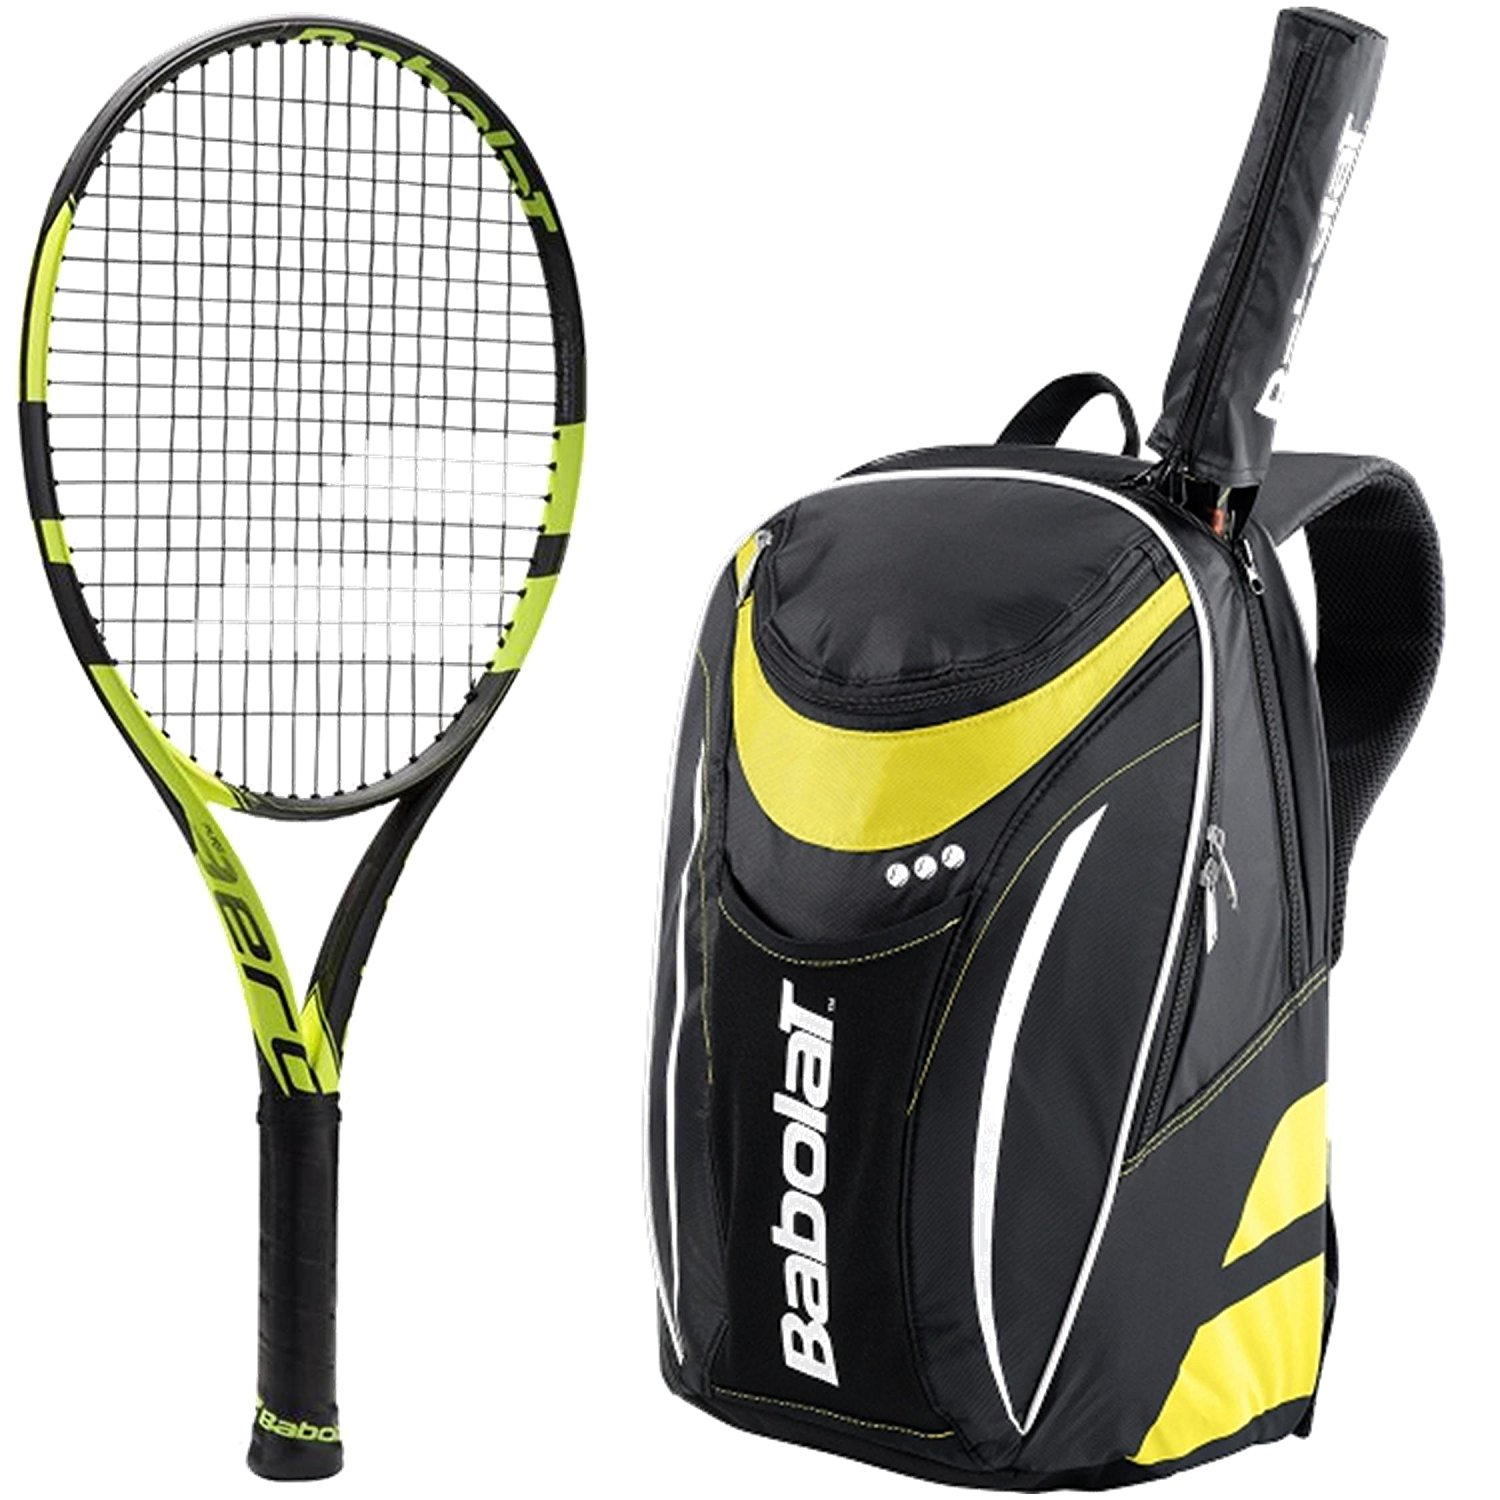 Babolat Pure Aero Junior Tennis Racquet bundled with a Club Tennis Backpack